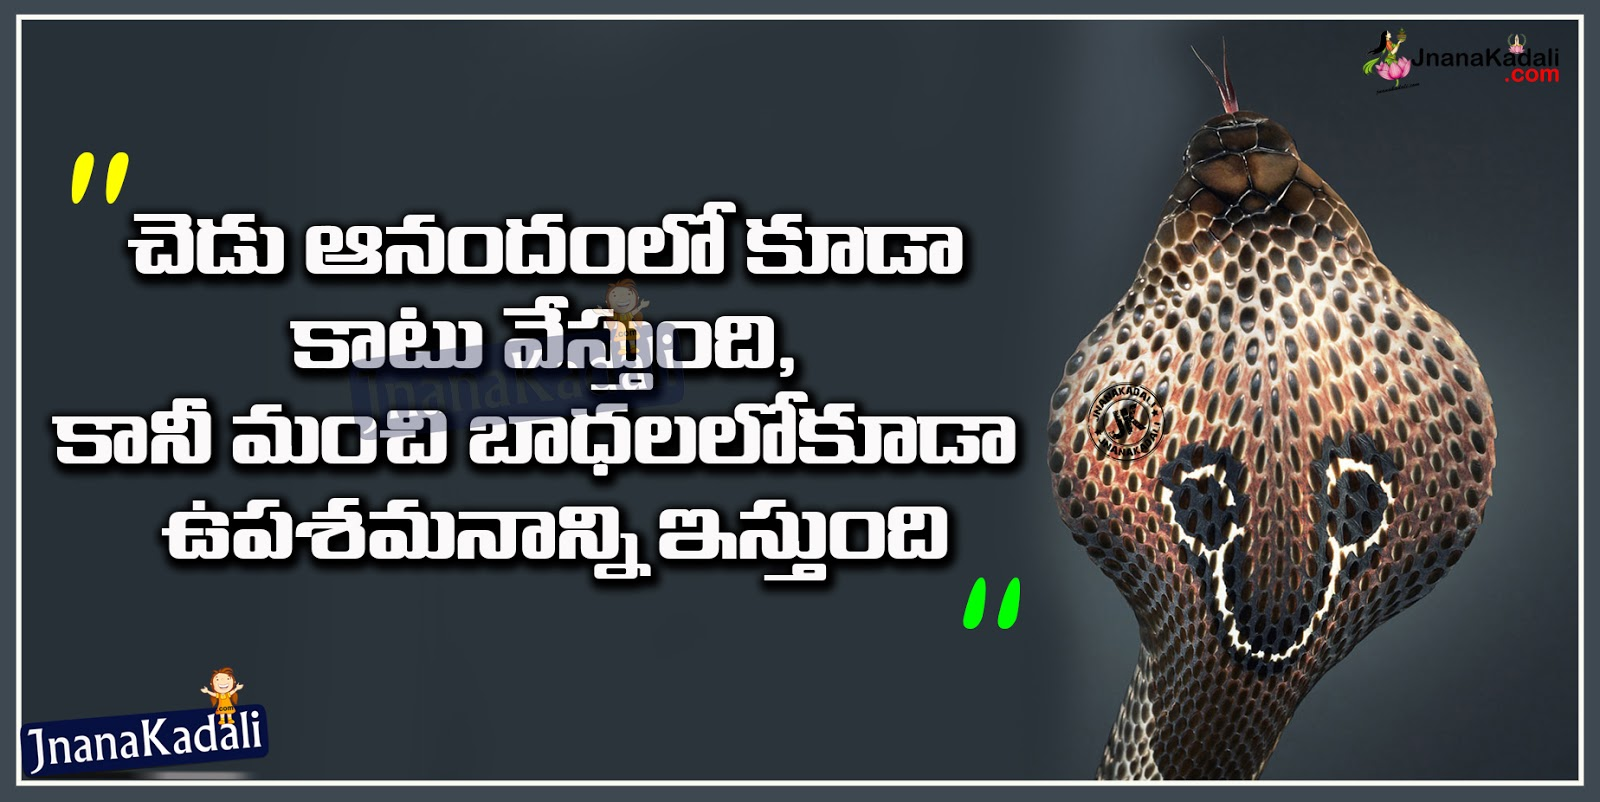 Inspirational Slogans Telugu Most Inspiring Quotations With Hd Wallpapers  Jnana Kadali